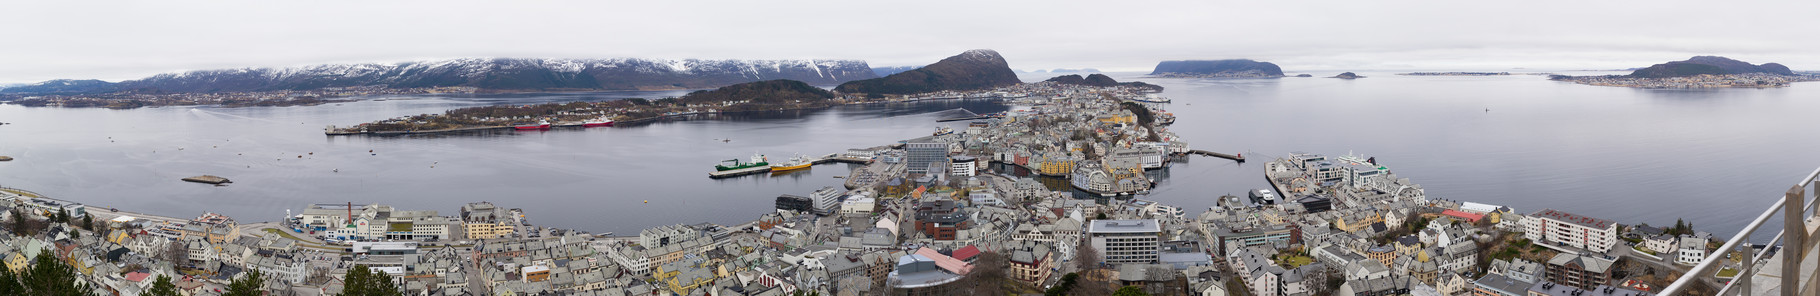 Alesund, Norwegen